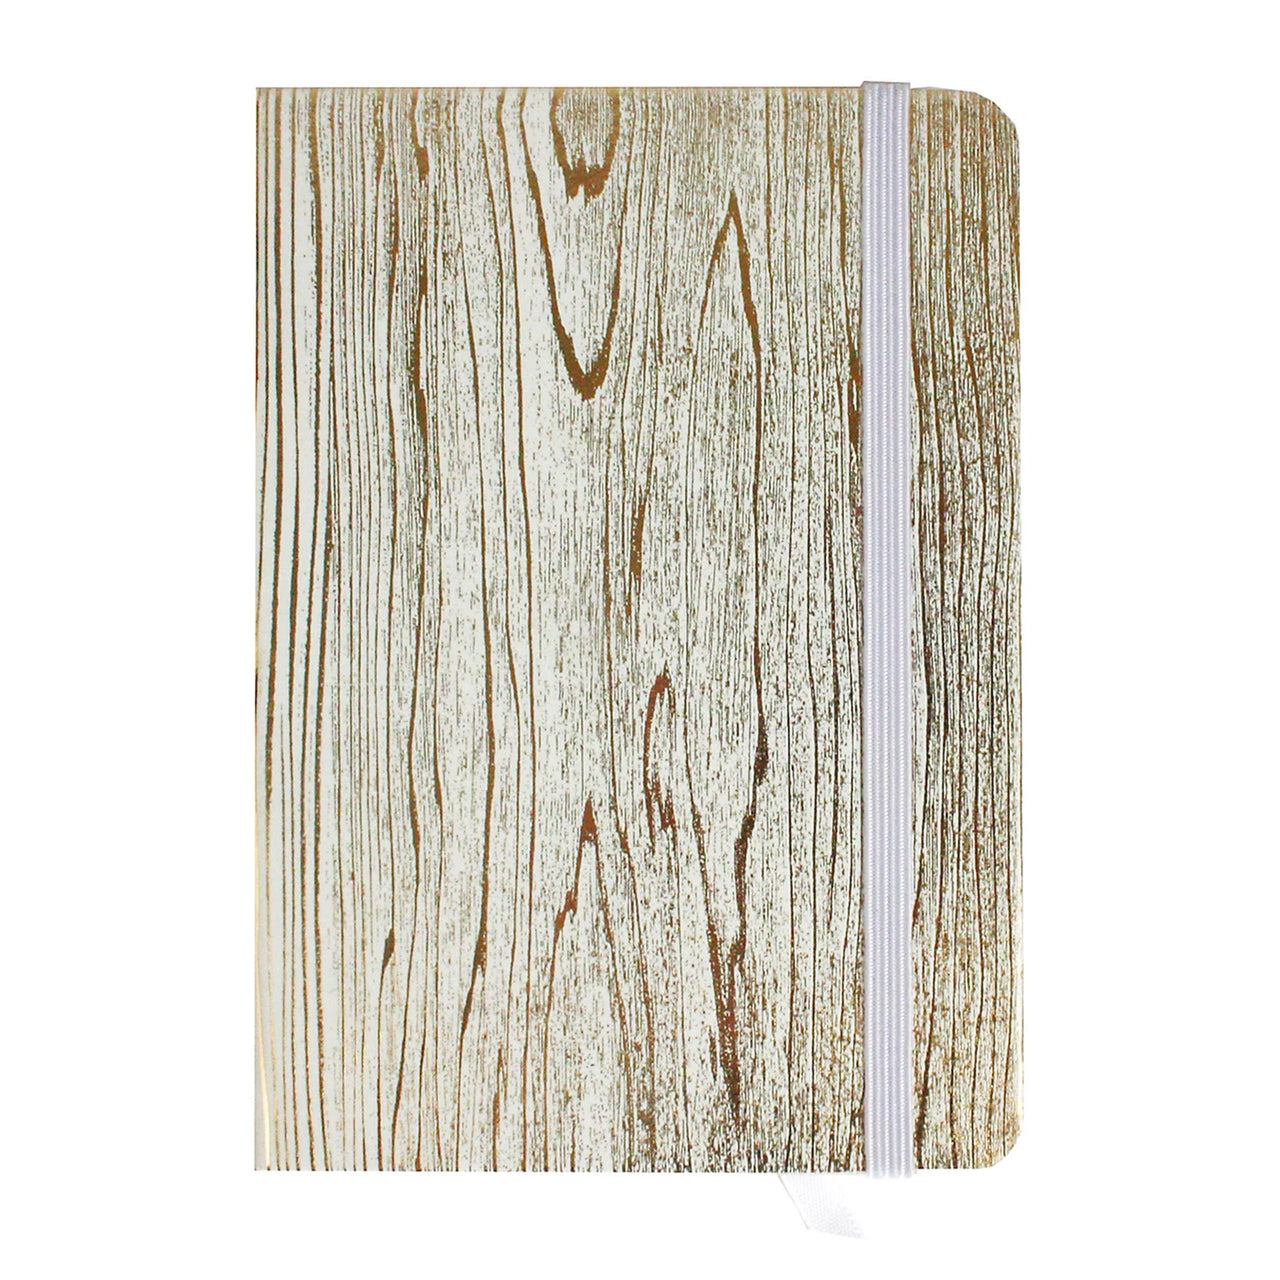 A7 Wood Effect Notebook - Metallic Gold - EMARTBUY